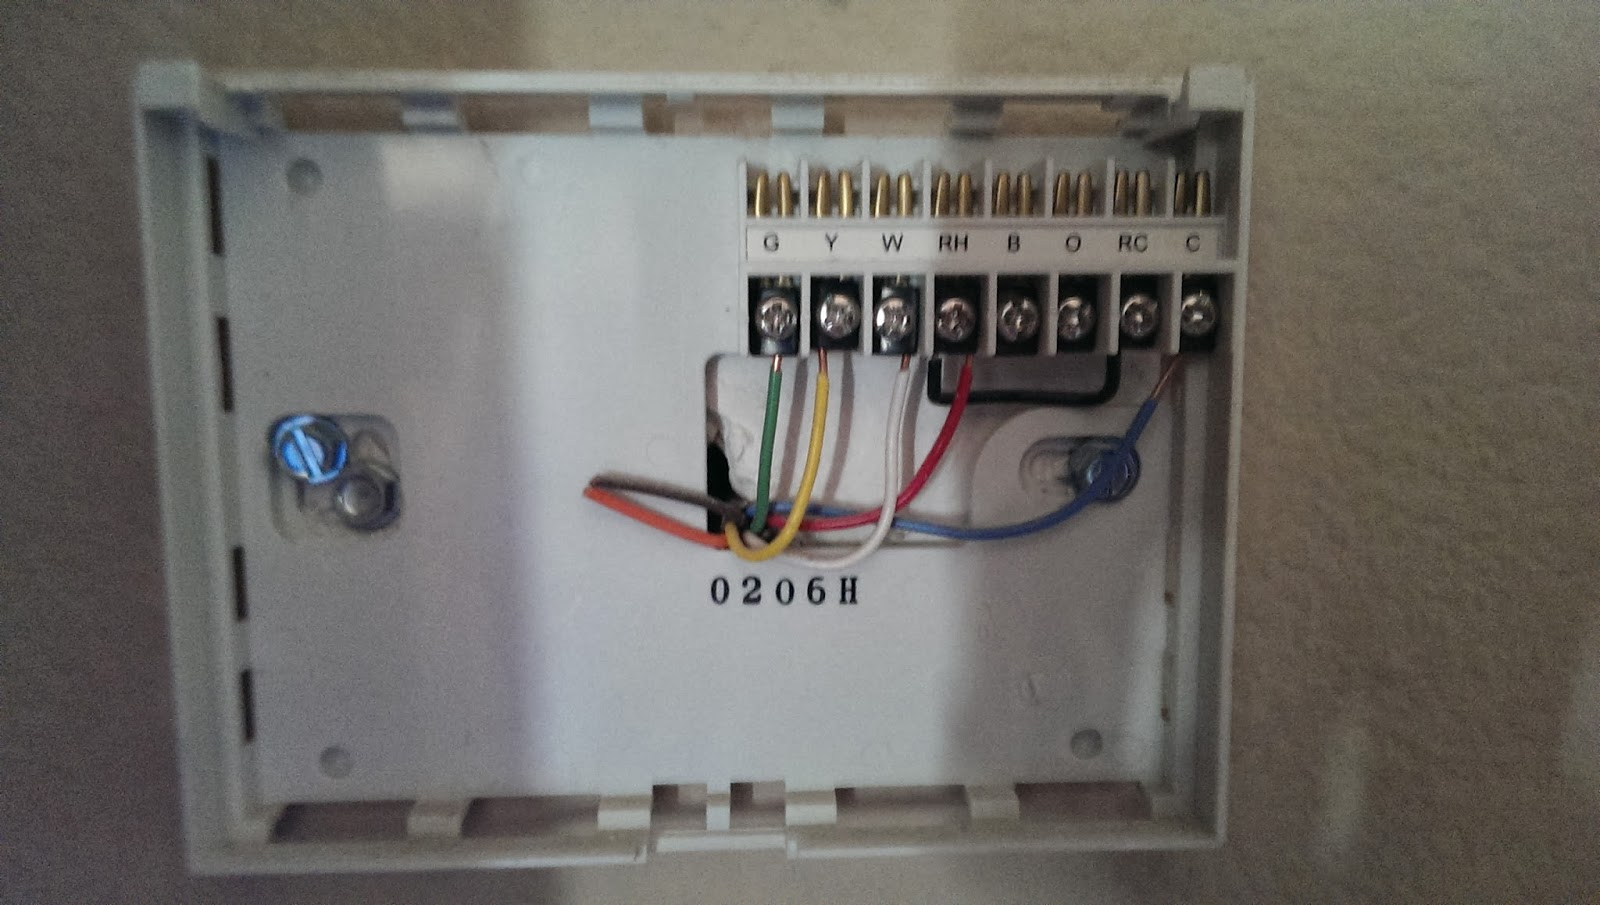 wiring diagram for a hunter thermostat images heat pump thermostat wiring diagram likewise fan relay on 5 wire